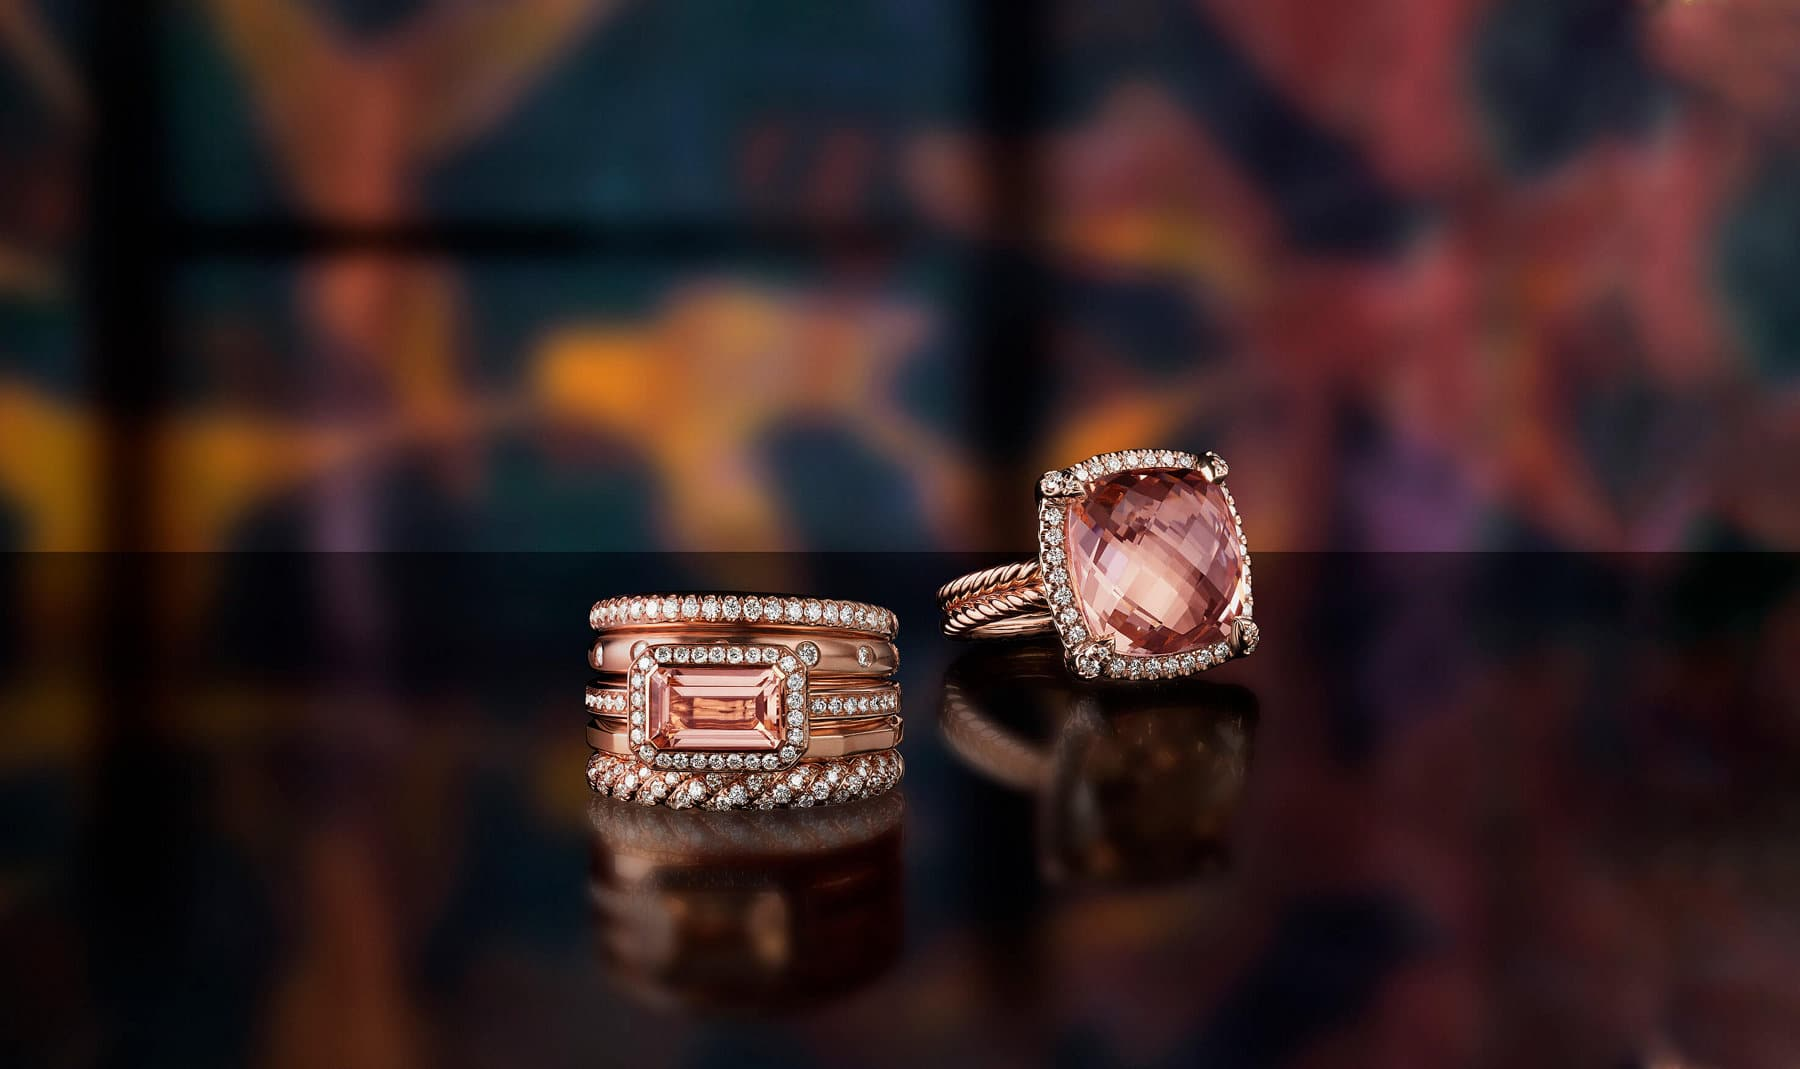 A color photograph shows a David Yurman Stax five-row ring and a Châtelaine ring scattered on a black reflective surface with a colorful stained glass panel illuminated behind them. The women's rings are crafted from 18K rose gold with pavé diamonds and morganite